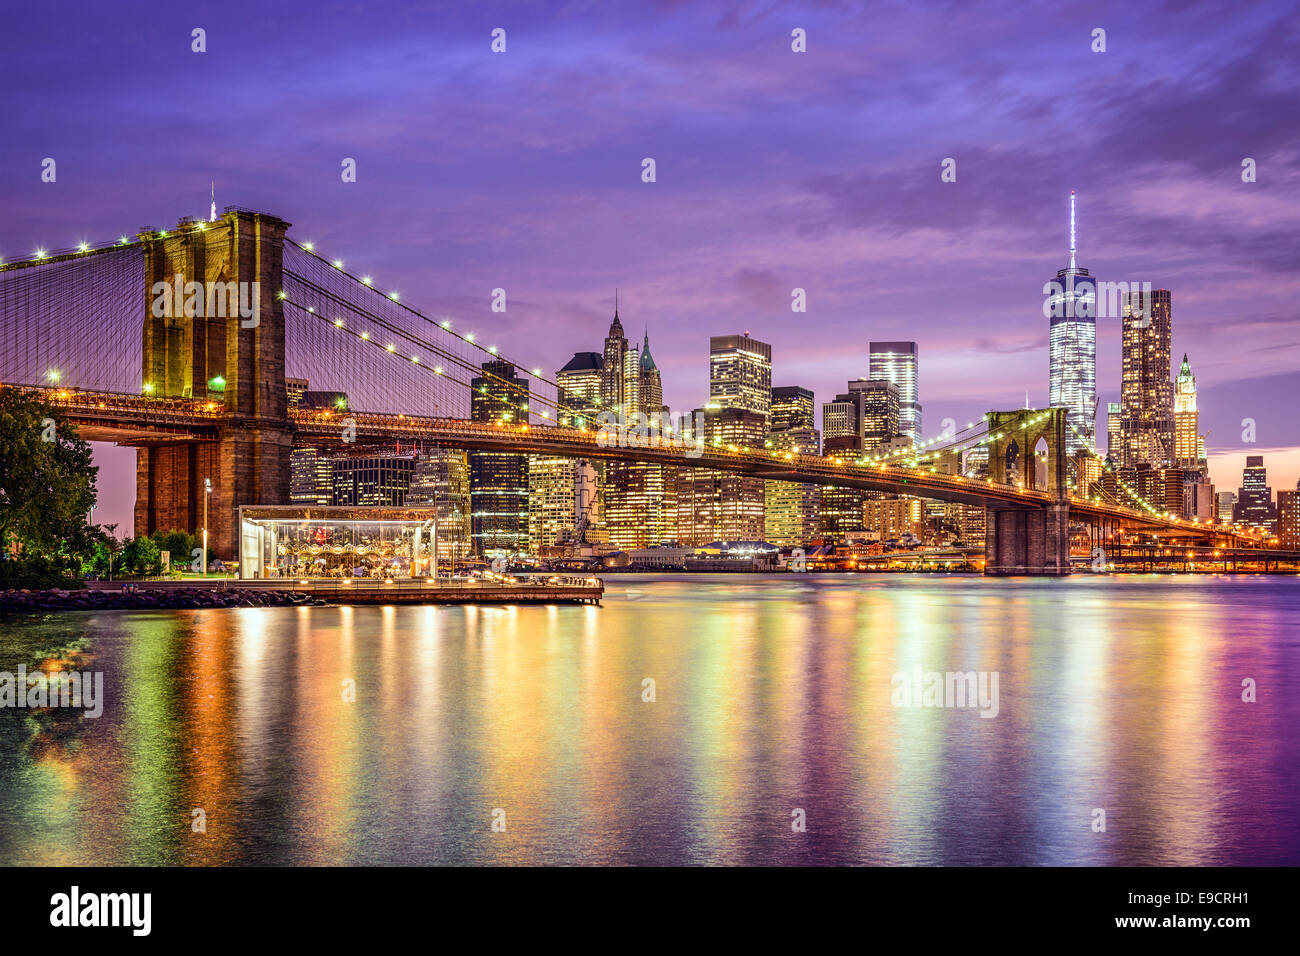 New York, New York, USA city skyline with the Brooklyn Bridge and Manhattan Financial District over the East River. - Stock Image